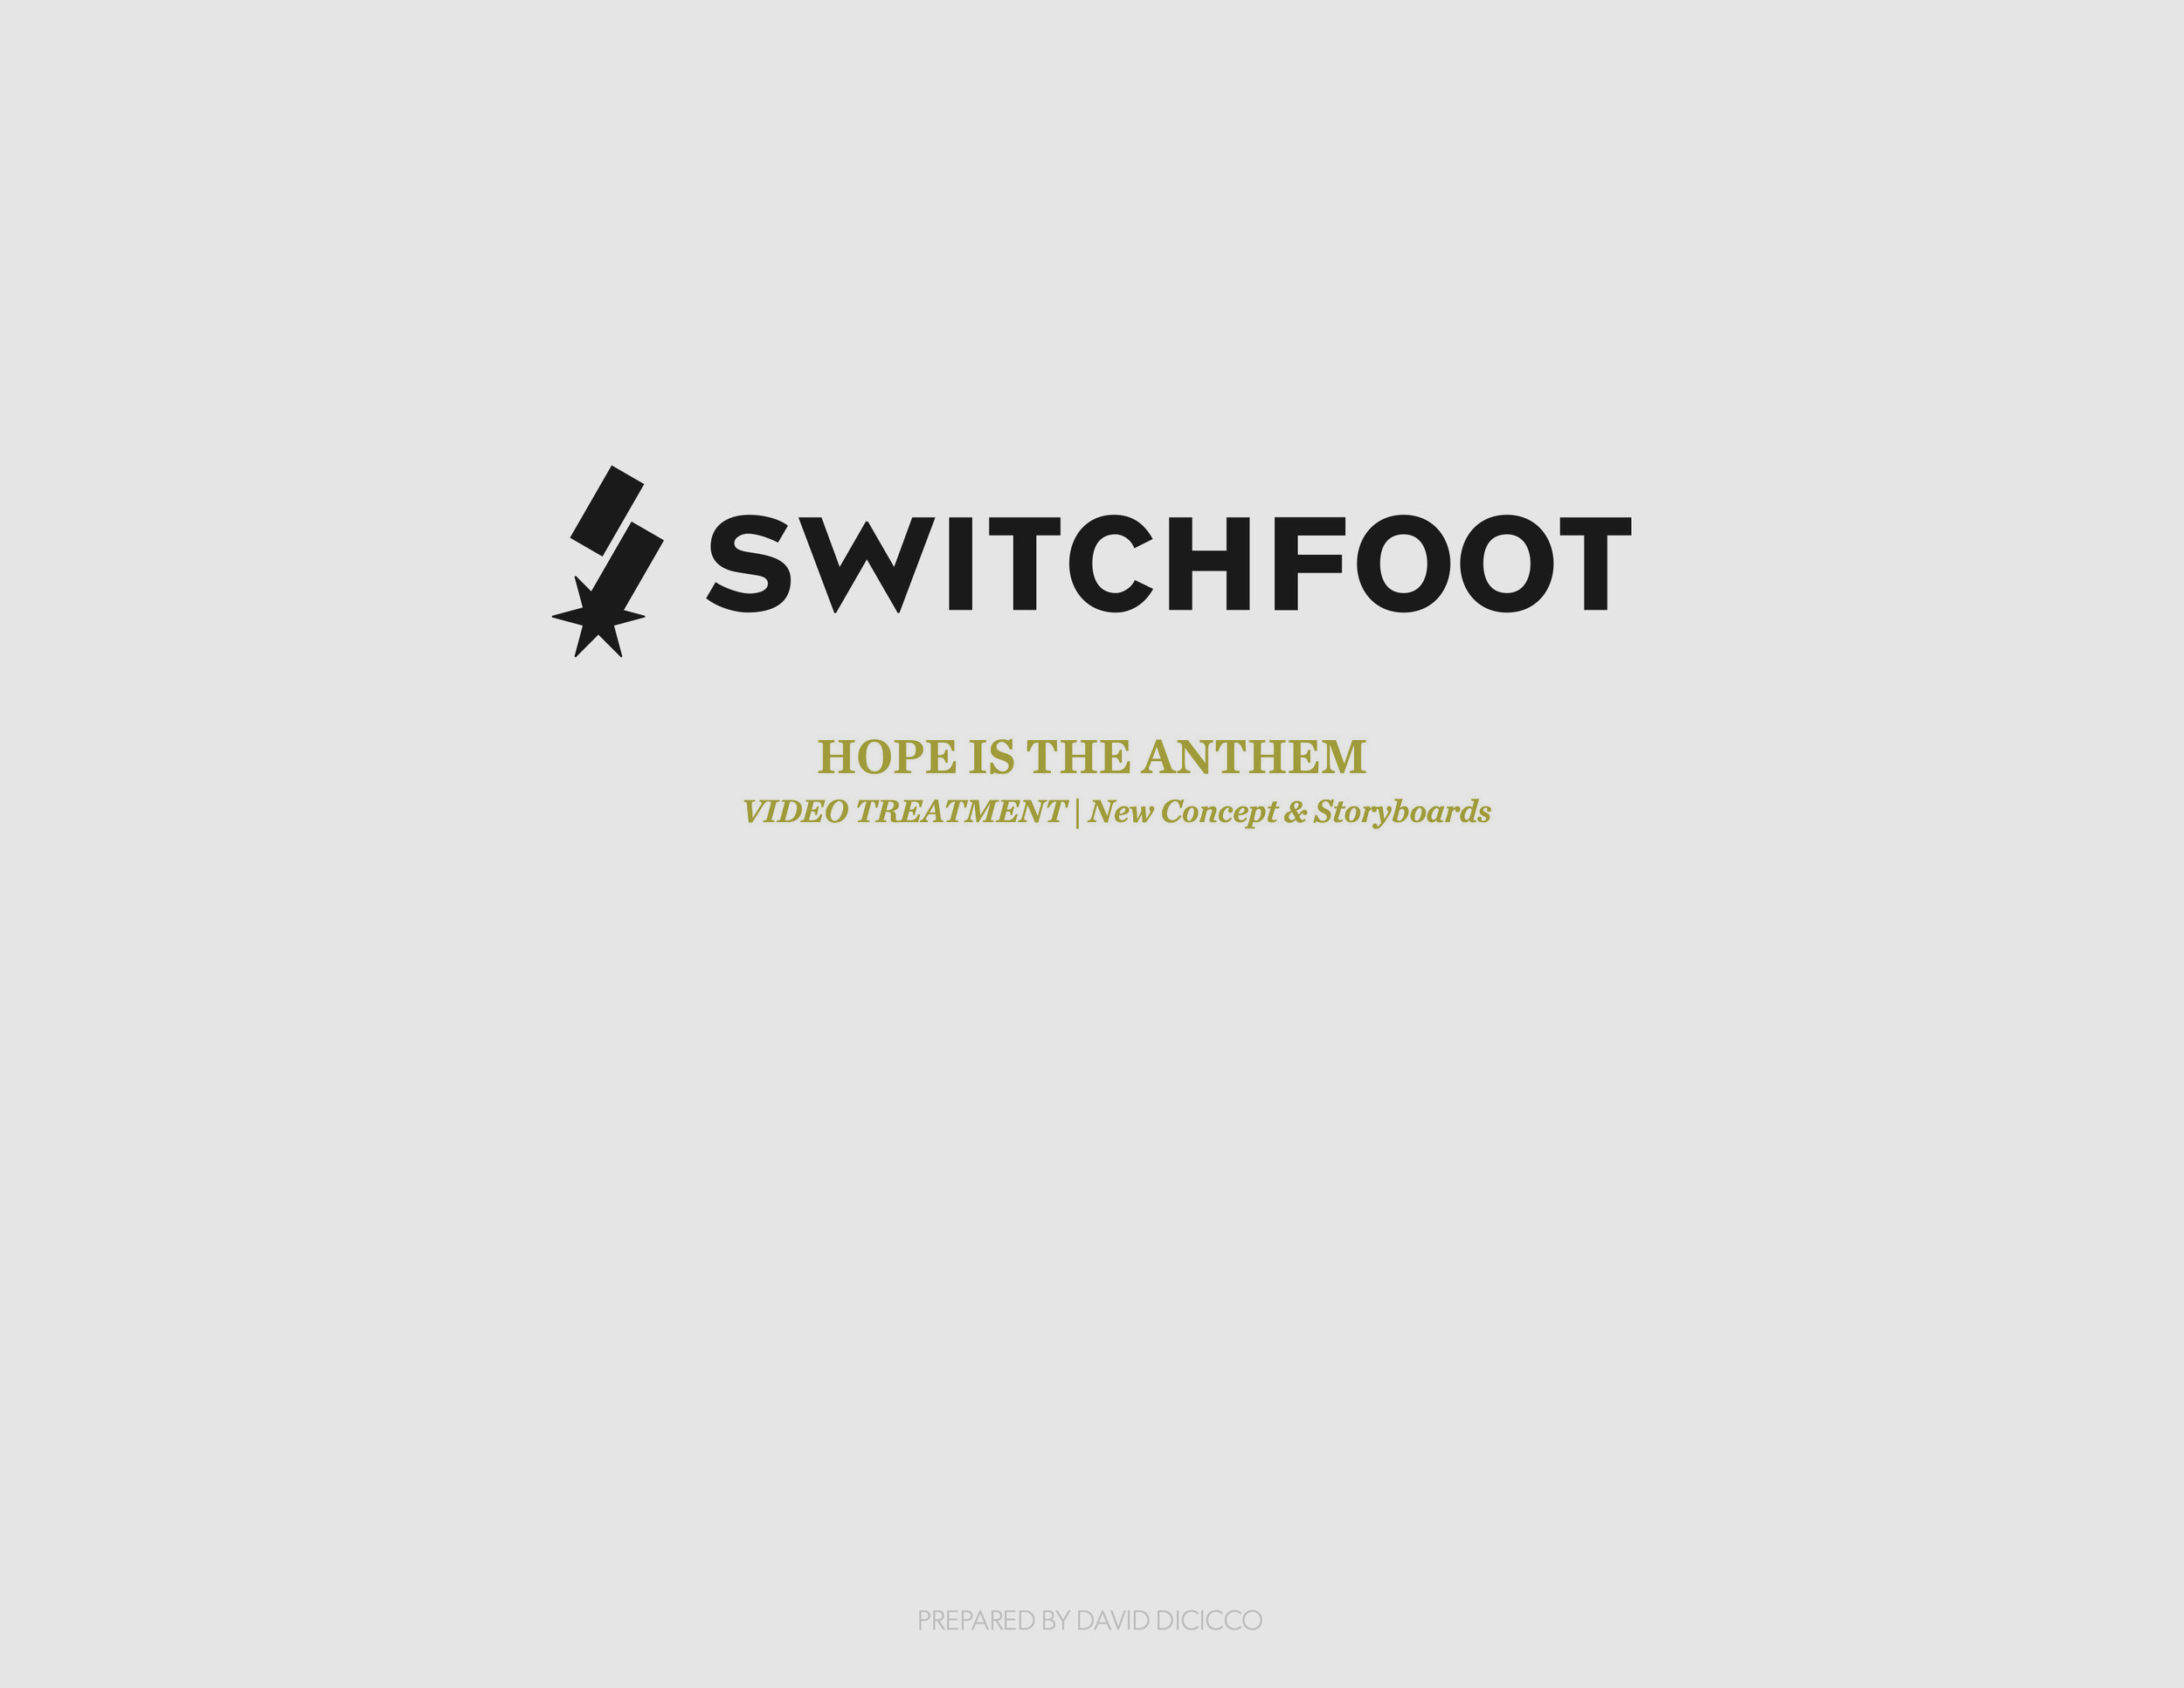 Switchfoot - Hope is the Anthem_Alternative